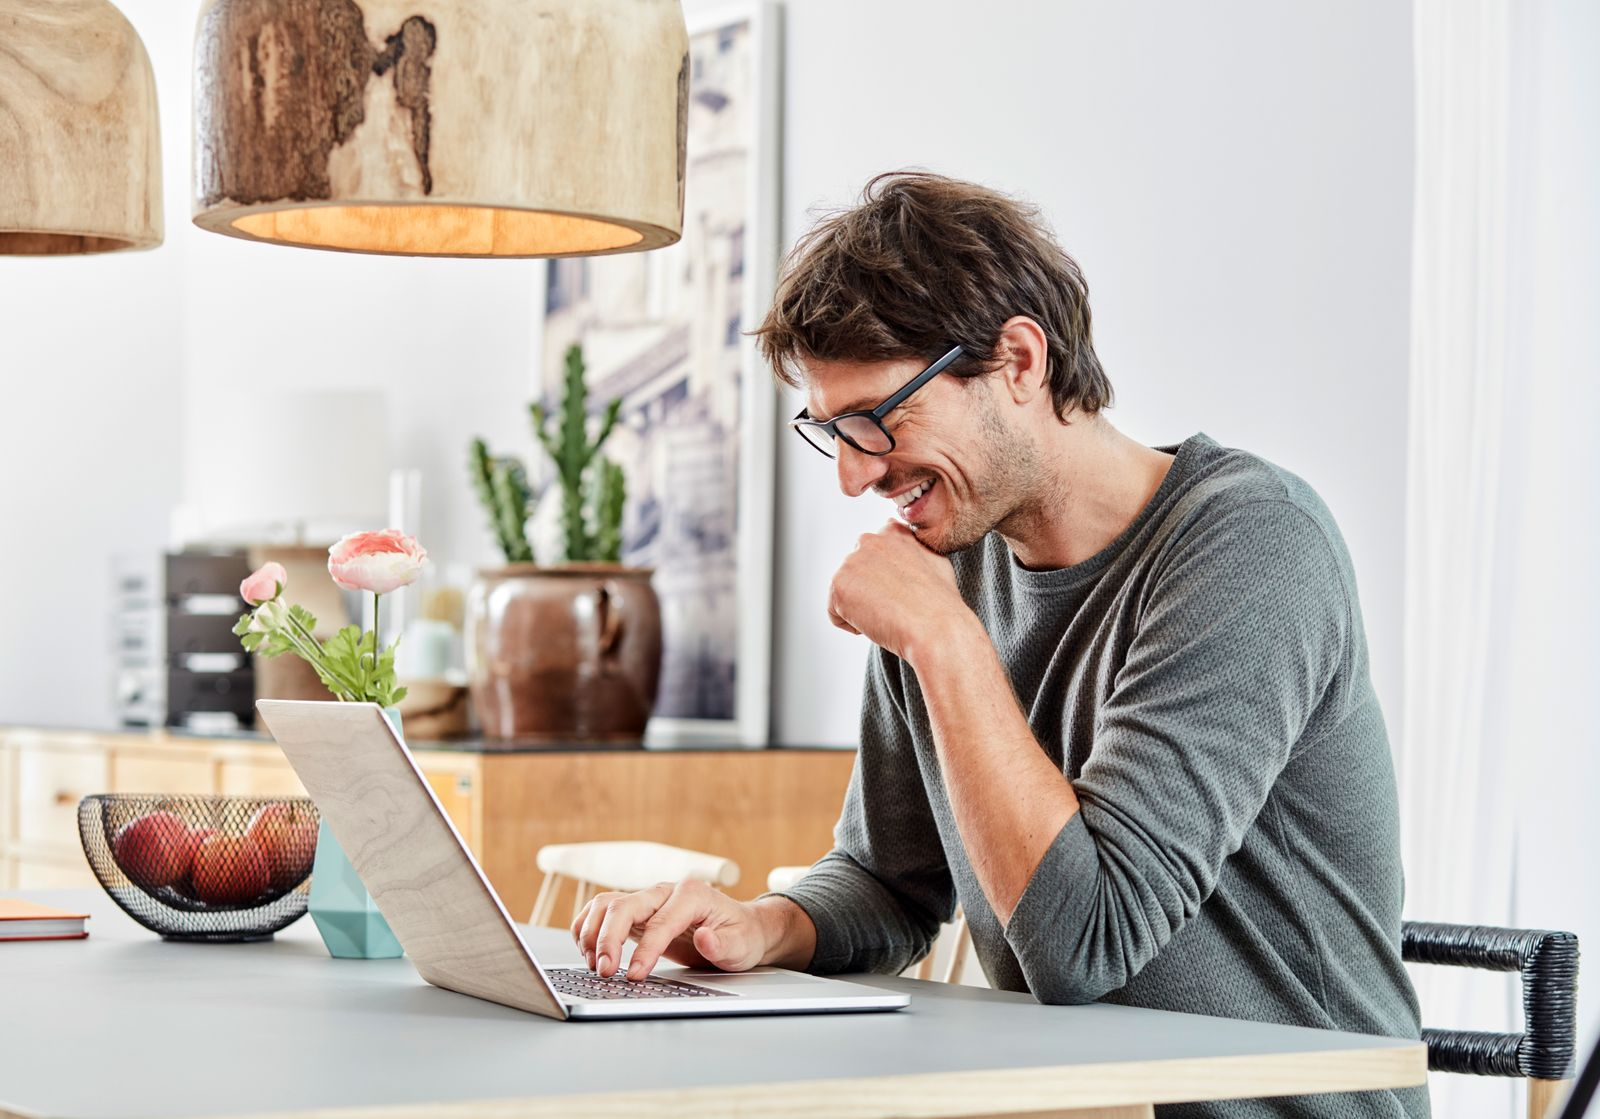 Smiling man using laptop on table at home